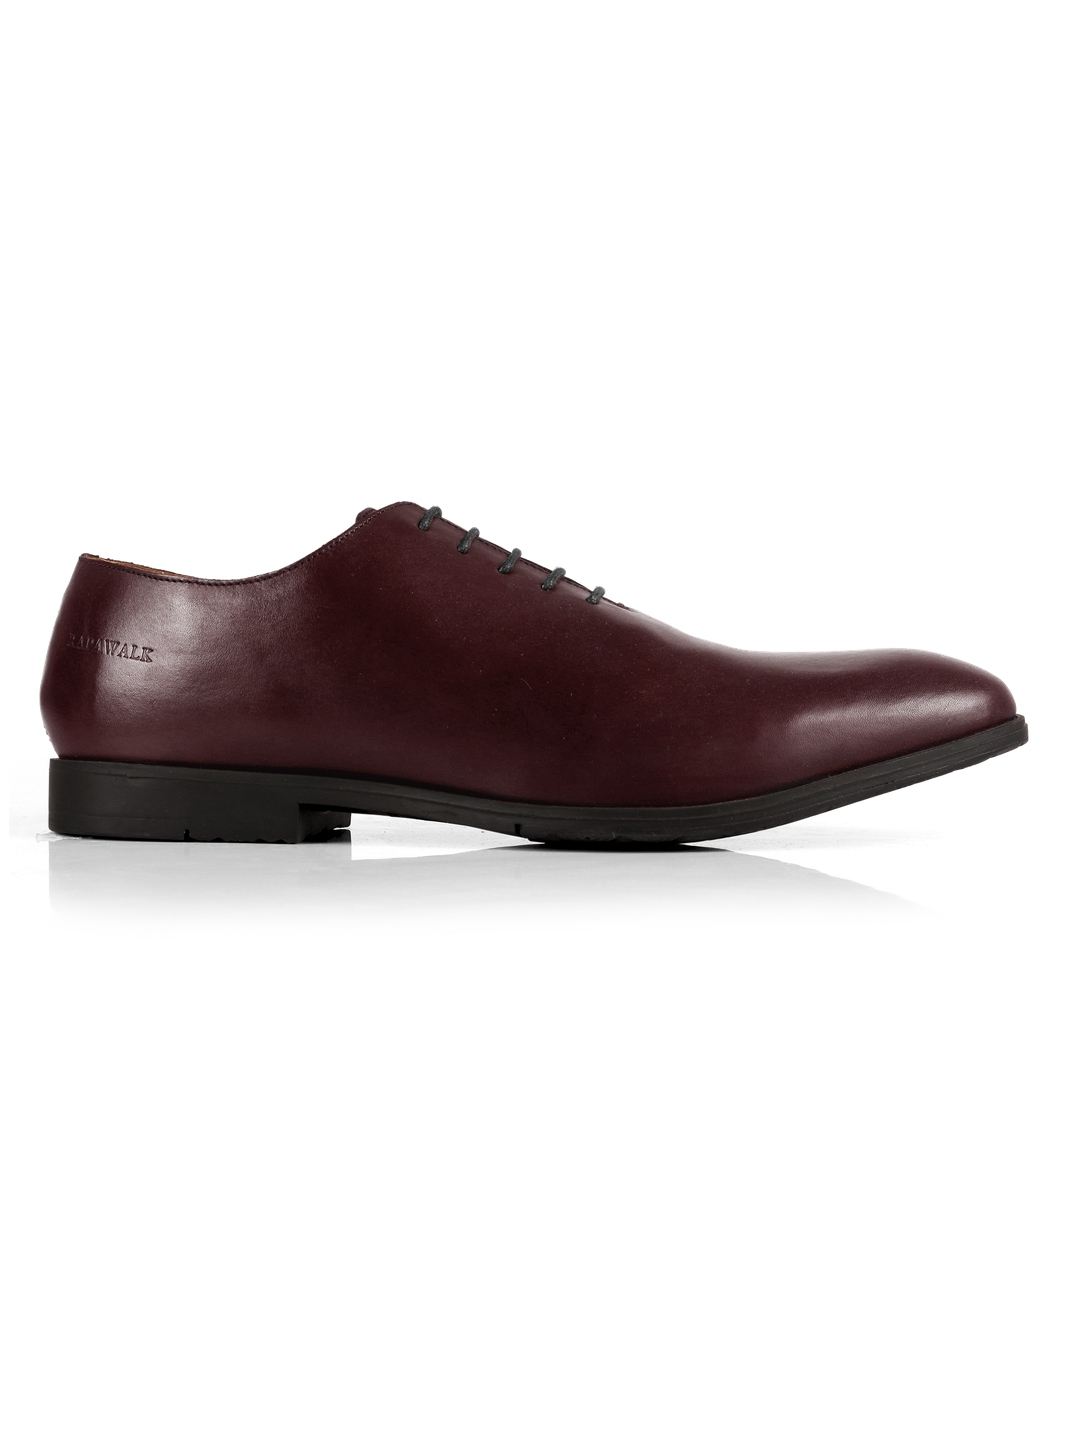 Burgundy Wholecut Oxford Leather Shoes